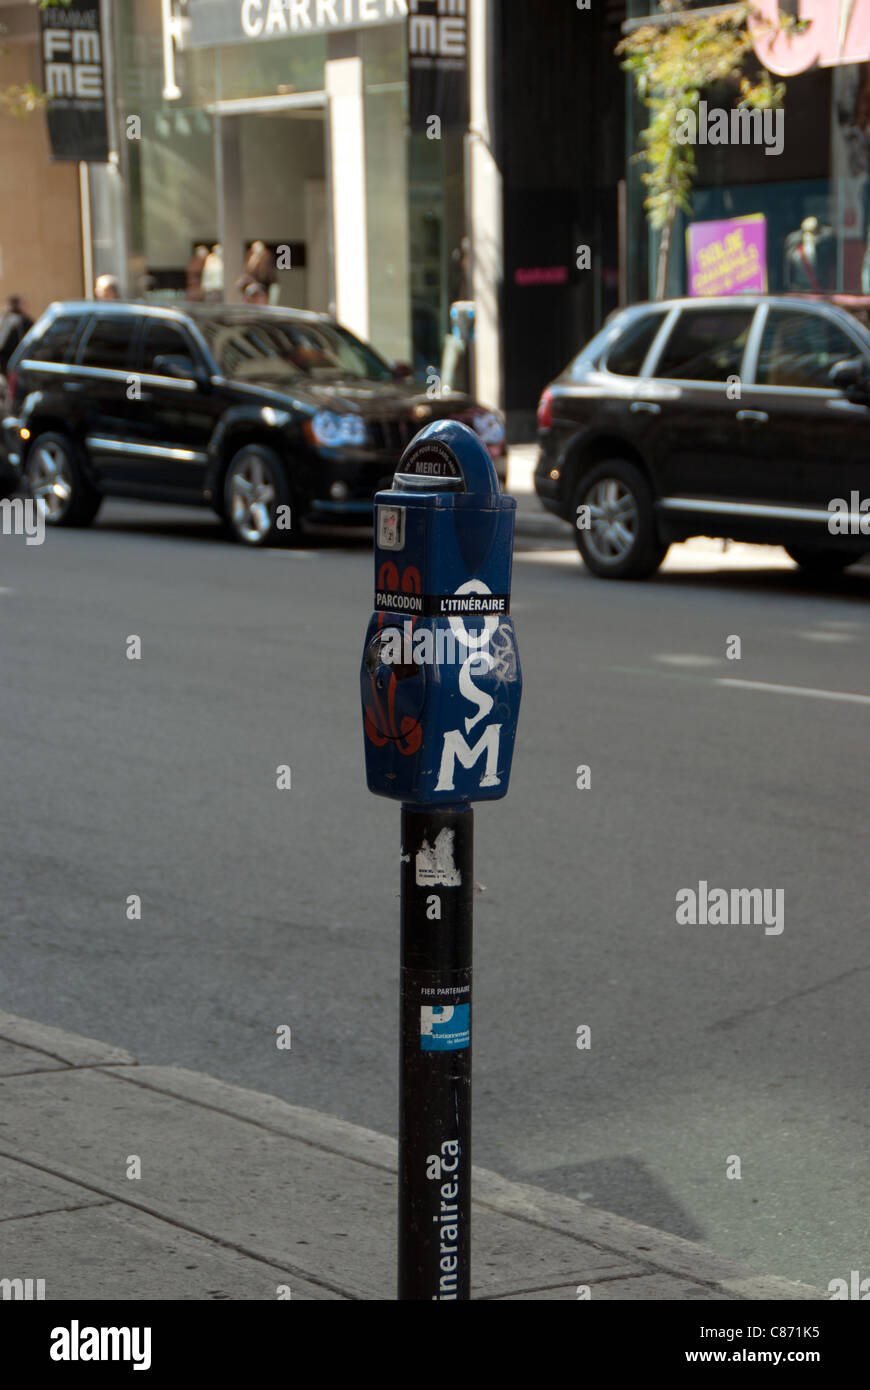 Parking old meter Montreal, Quebec, Canada - Stock Image